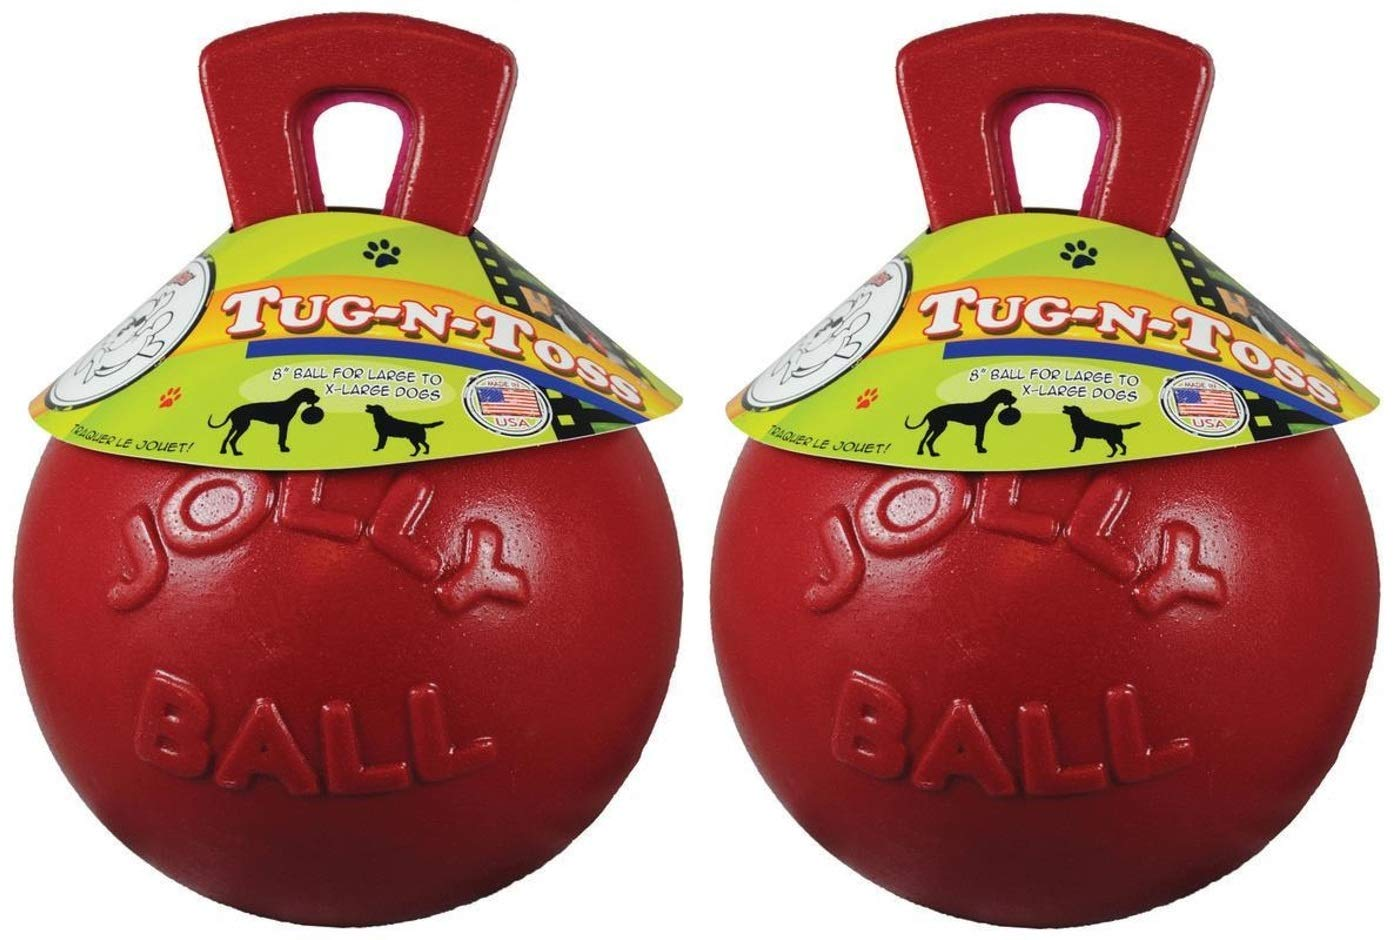 Jolly Pets 2 Pack of Tug-n-Toss Heavy Duty Chew Ball with Handle, Red, 6-Inch